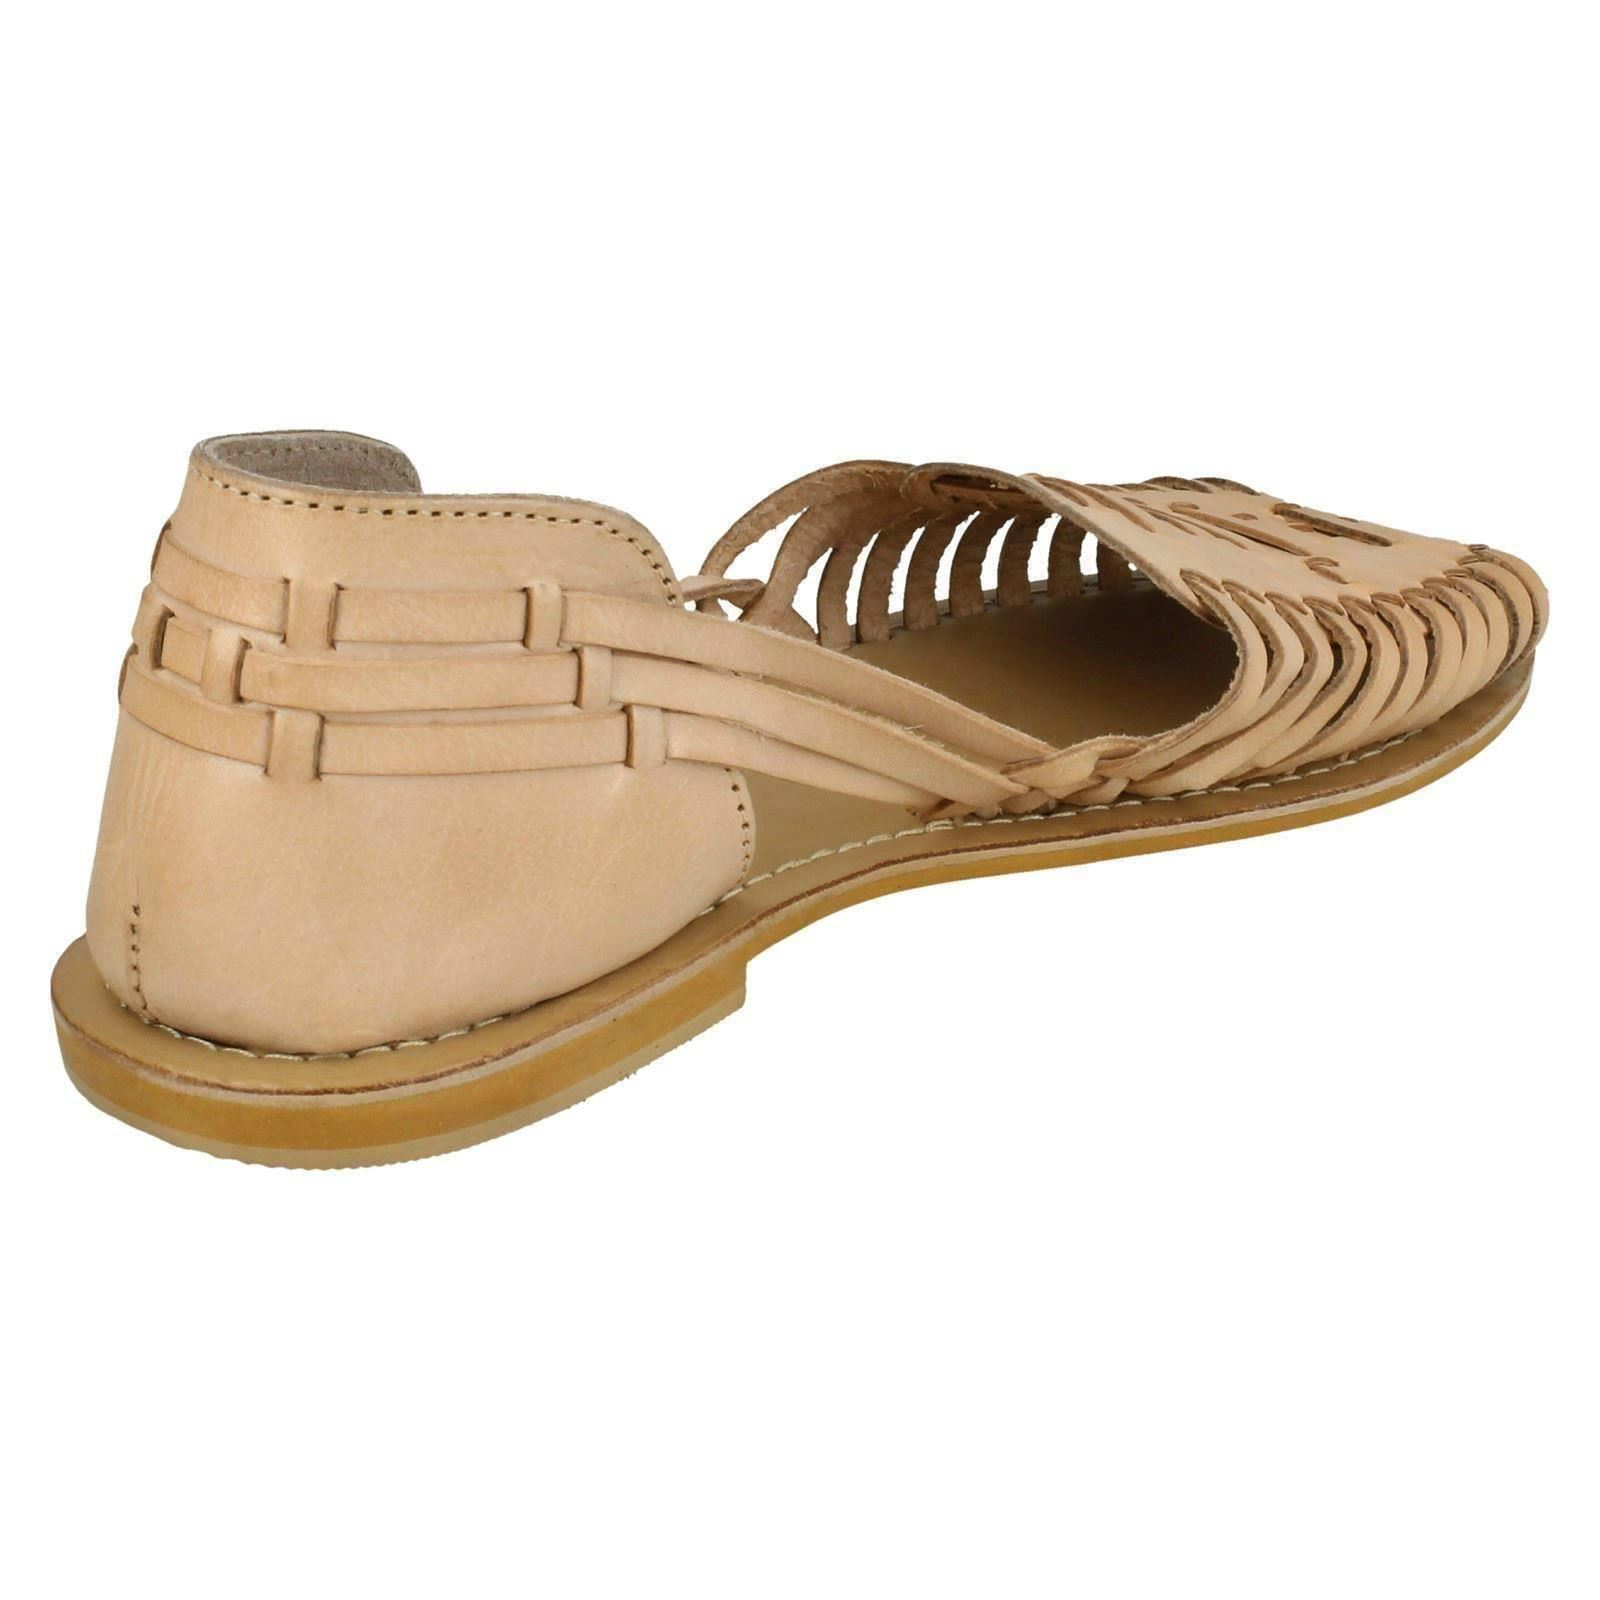 Mujer-Leather-Collection-Tejido-Plano-039-Sandalias-039